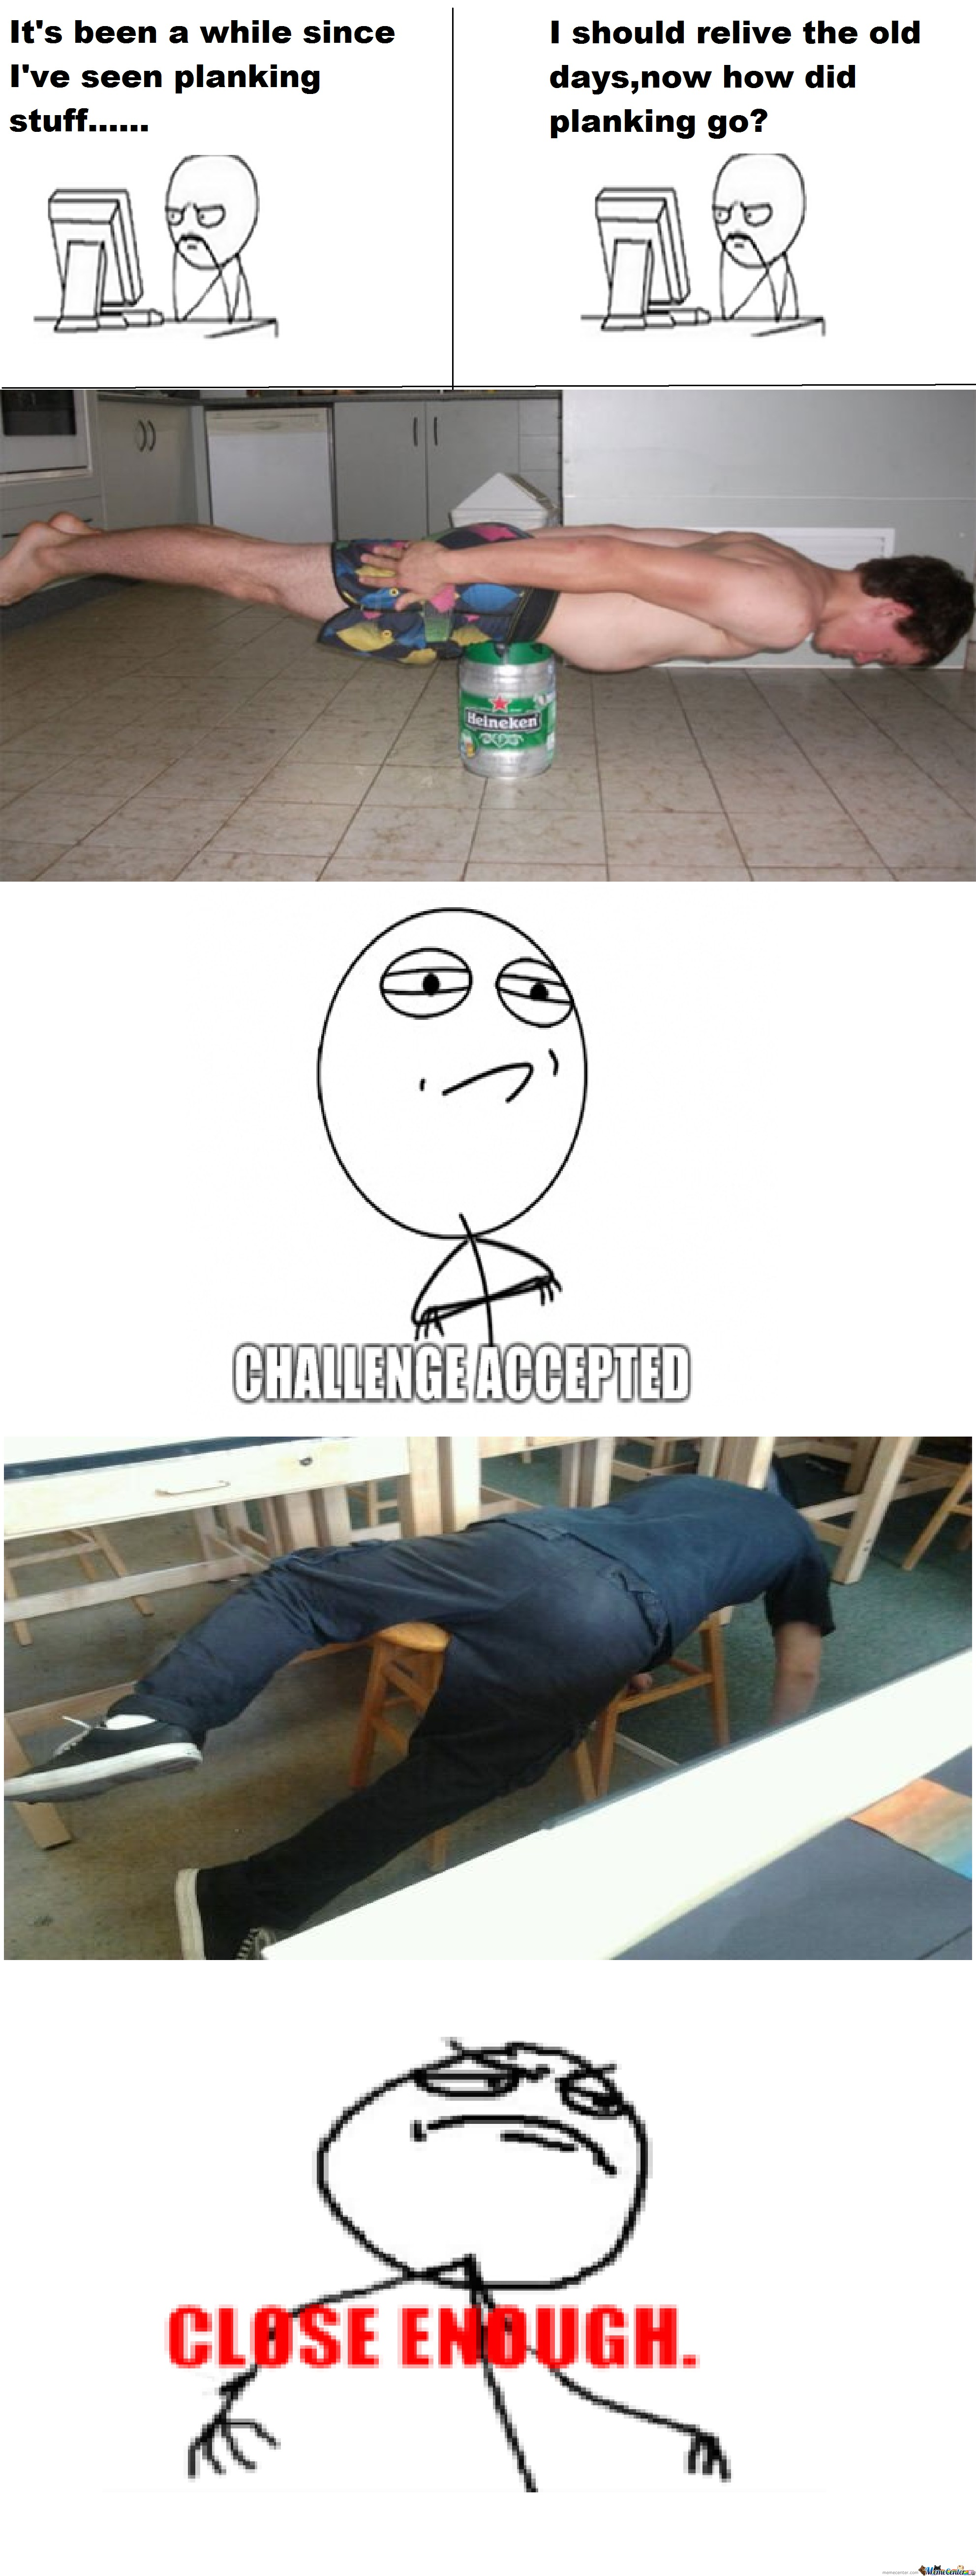 Who Remembers Planking?